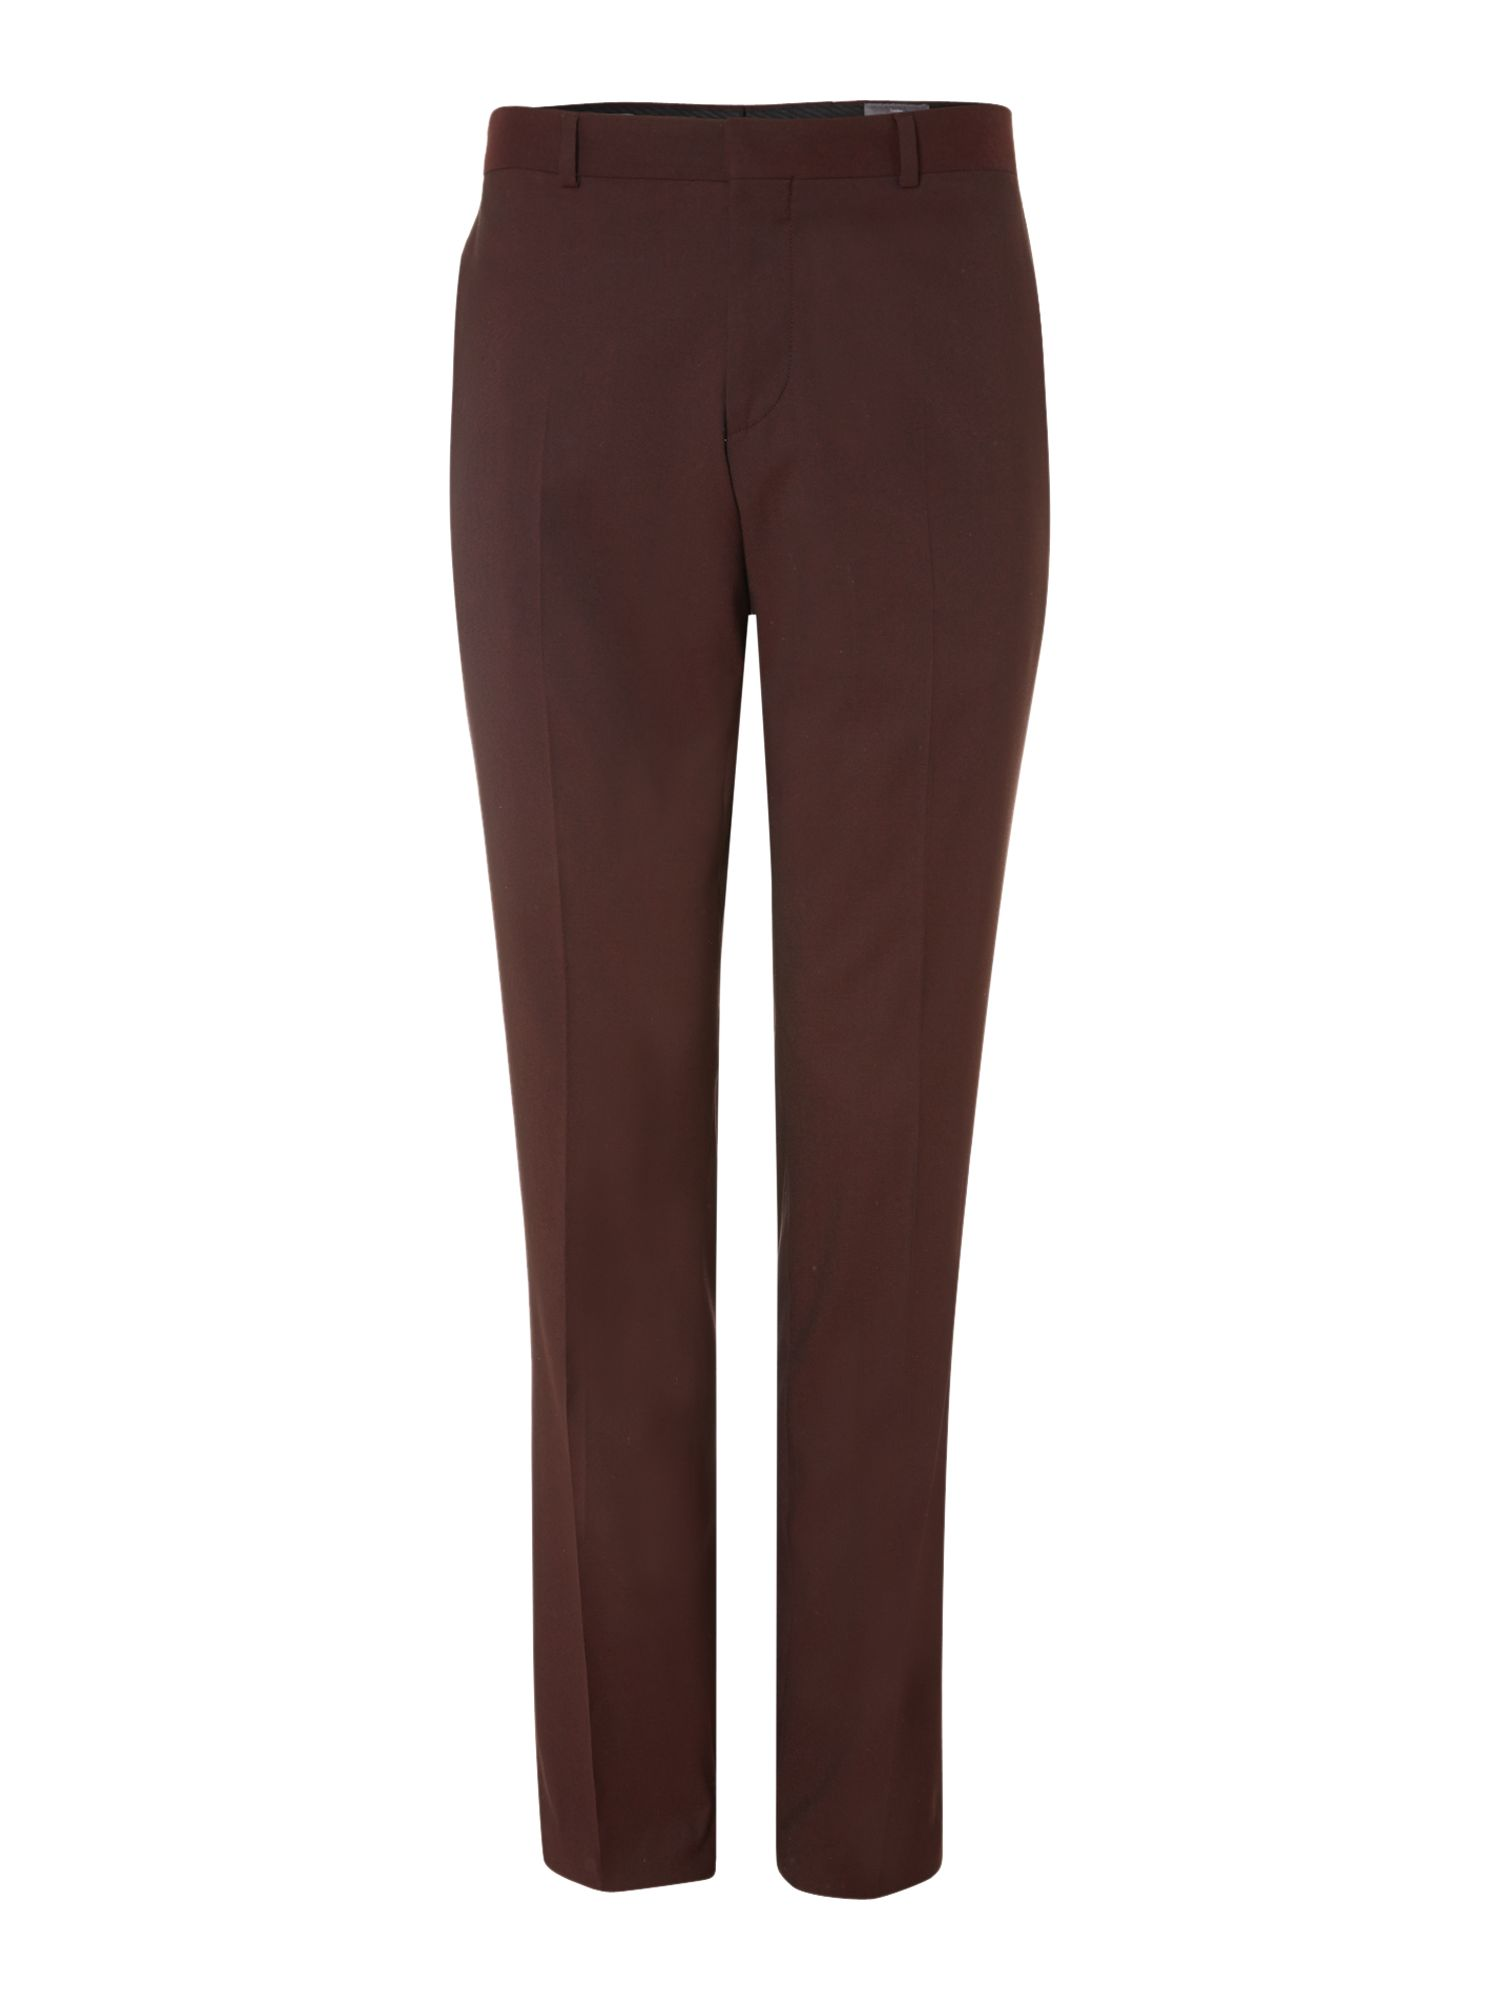 Ingleside n1 cut suit trouser